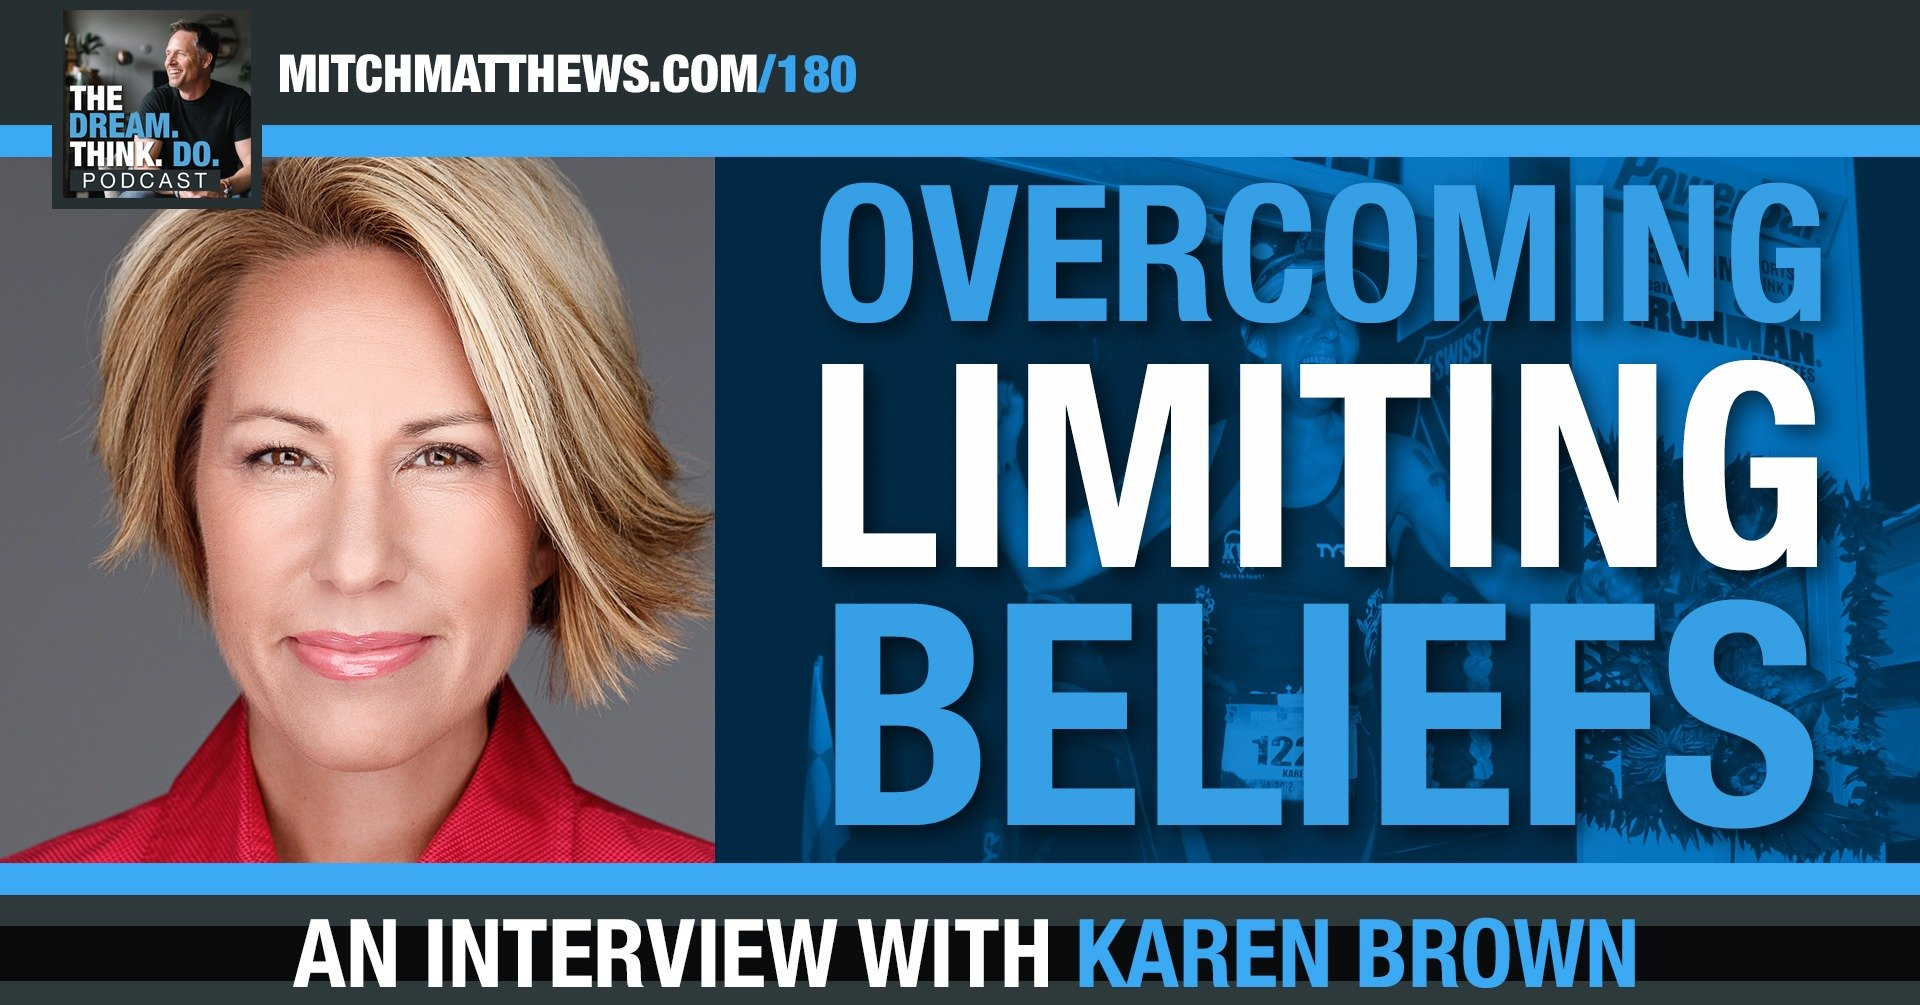 Overcoming Limiting Beliefs, with Karen Brown